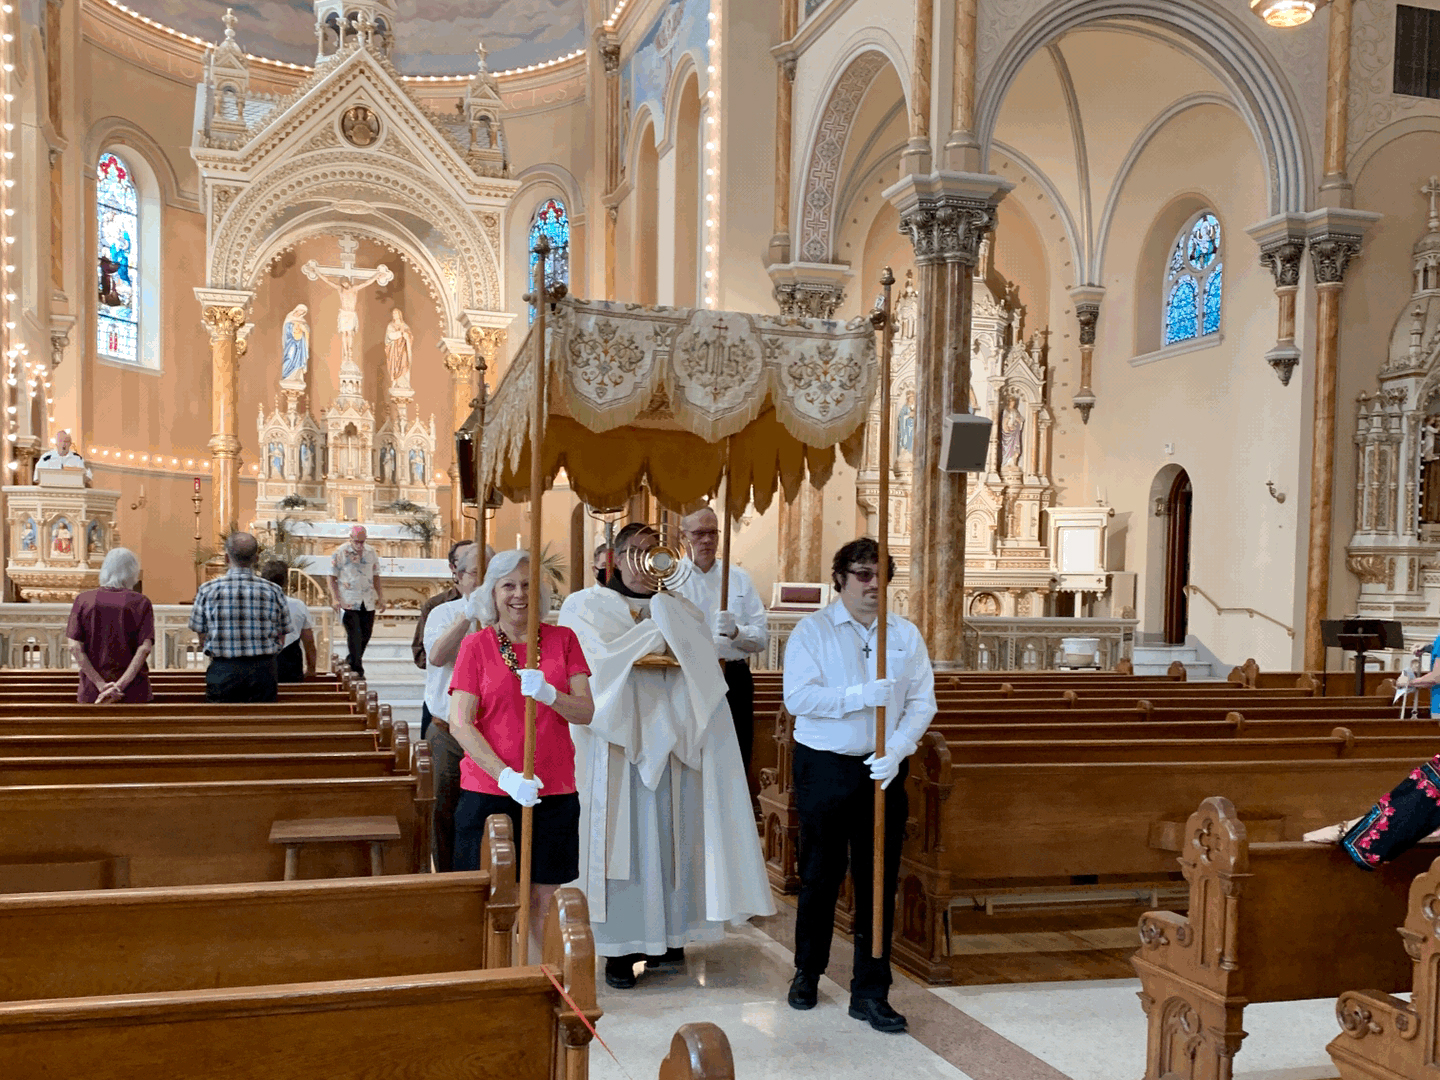 The beginning of the Corpus Christi Procession at St. Anthony Church in St. Louis, Missouri, June 7, 2021. The 140-year-old traditional procession is led by a band. Photo by Barb Gilman